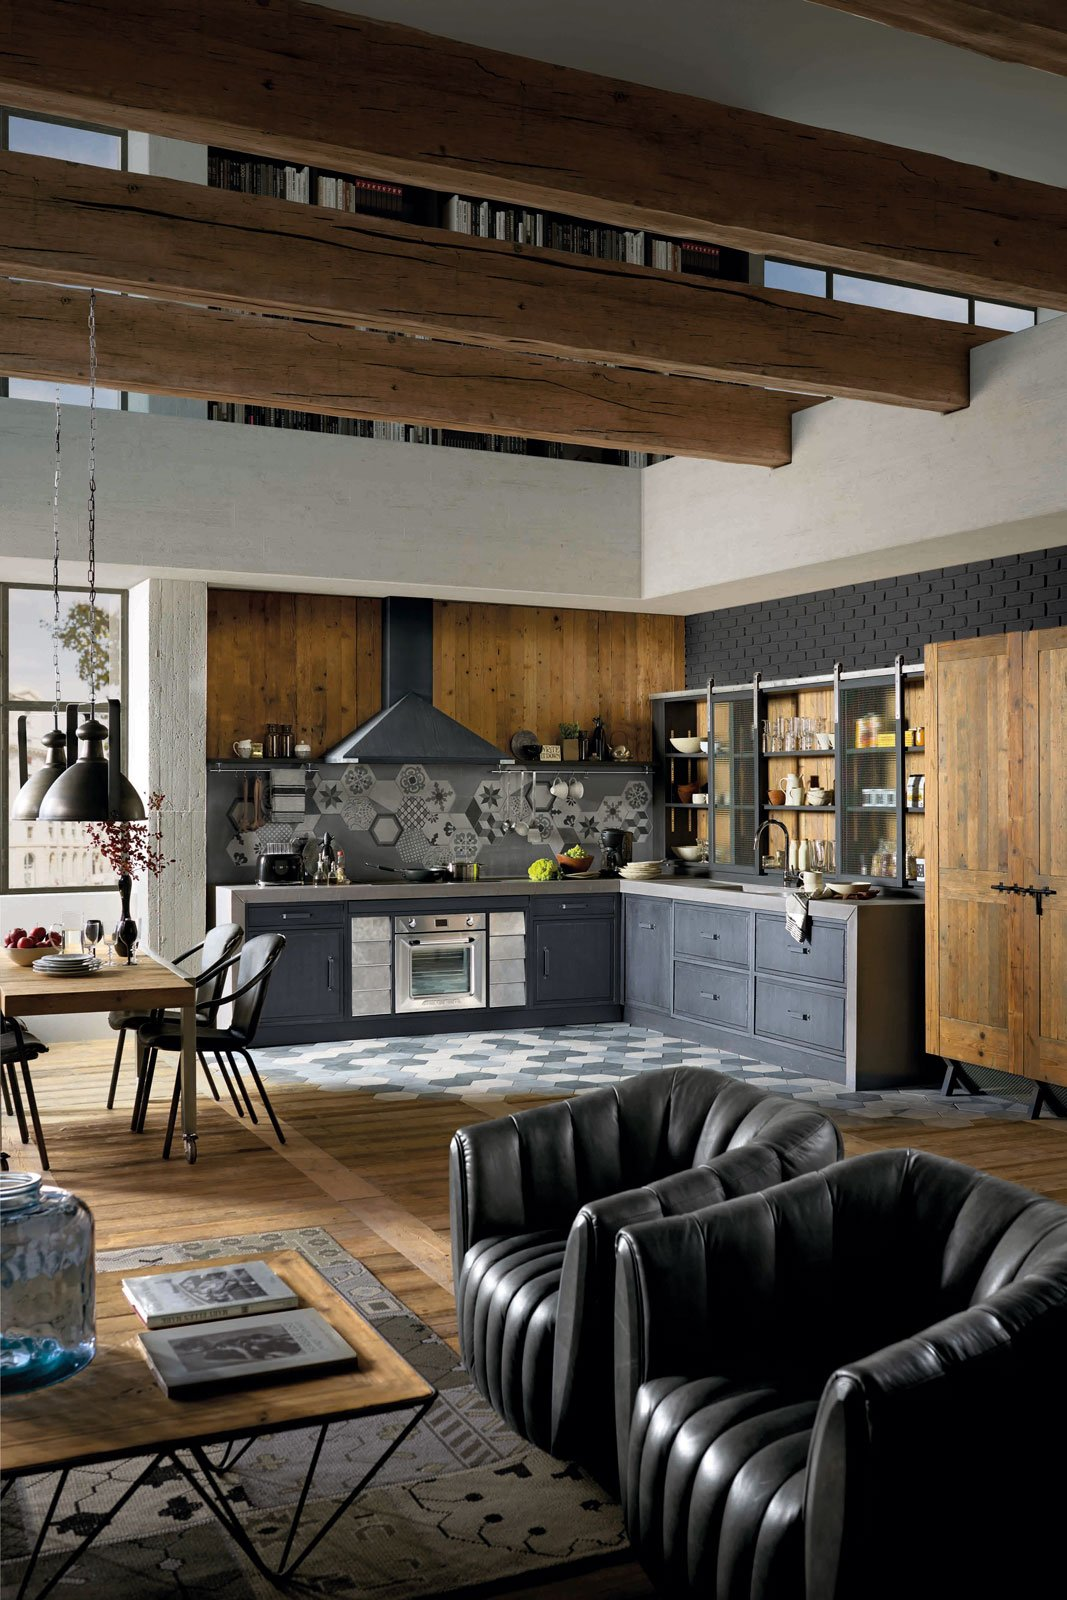 Stunning Top Cucina Cemento Pictures - Design & Ideas 2017 - candp.us